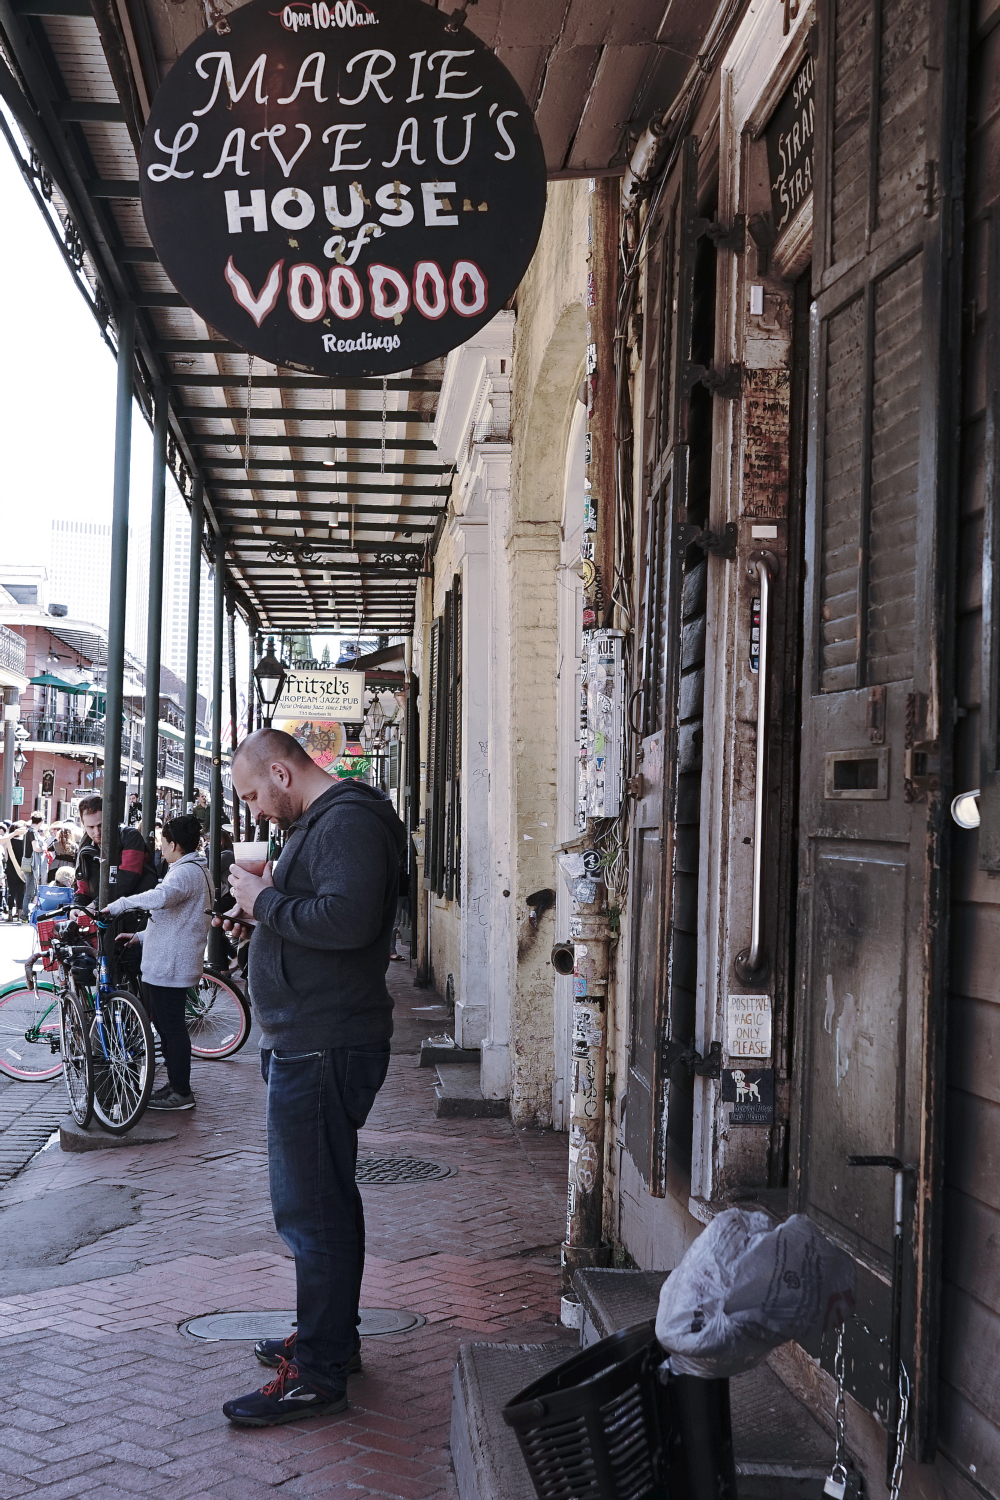 Marie Laveau's House of Voodoo